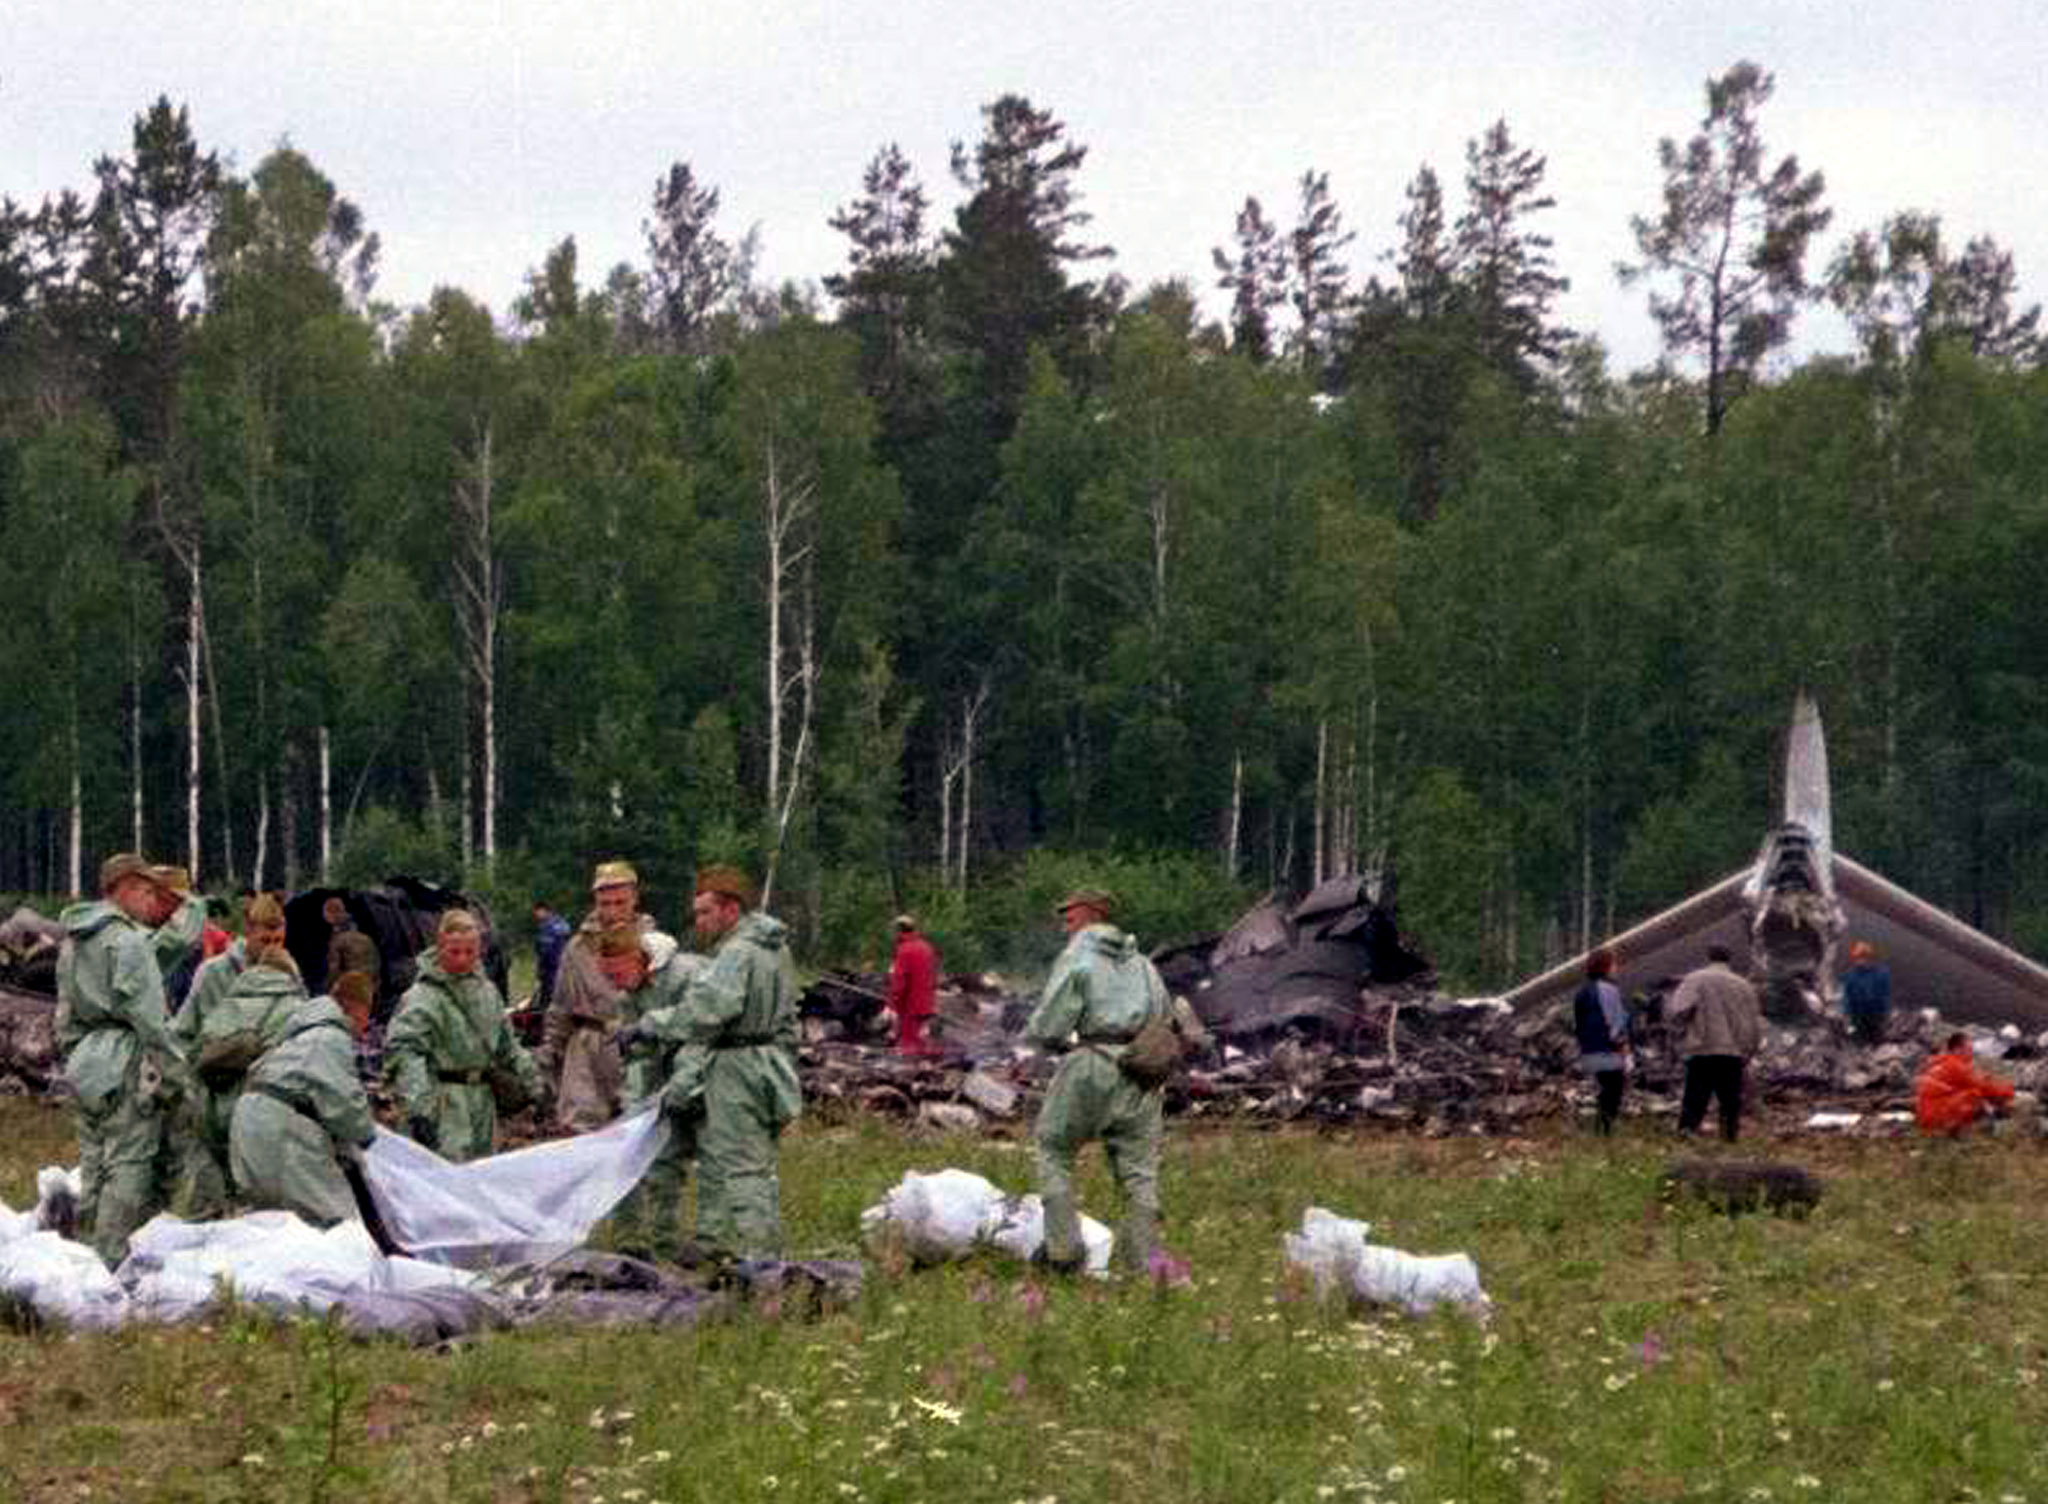 Russian rescue workers collect the remains of people, July 4, 2001, killed in the crash of Tupolev Tu-154 plane 30 kilometers (18 miles) away from Irkutsk. ©REUTERS